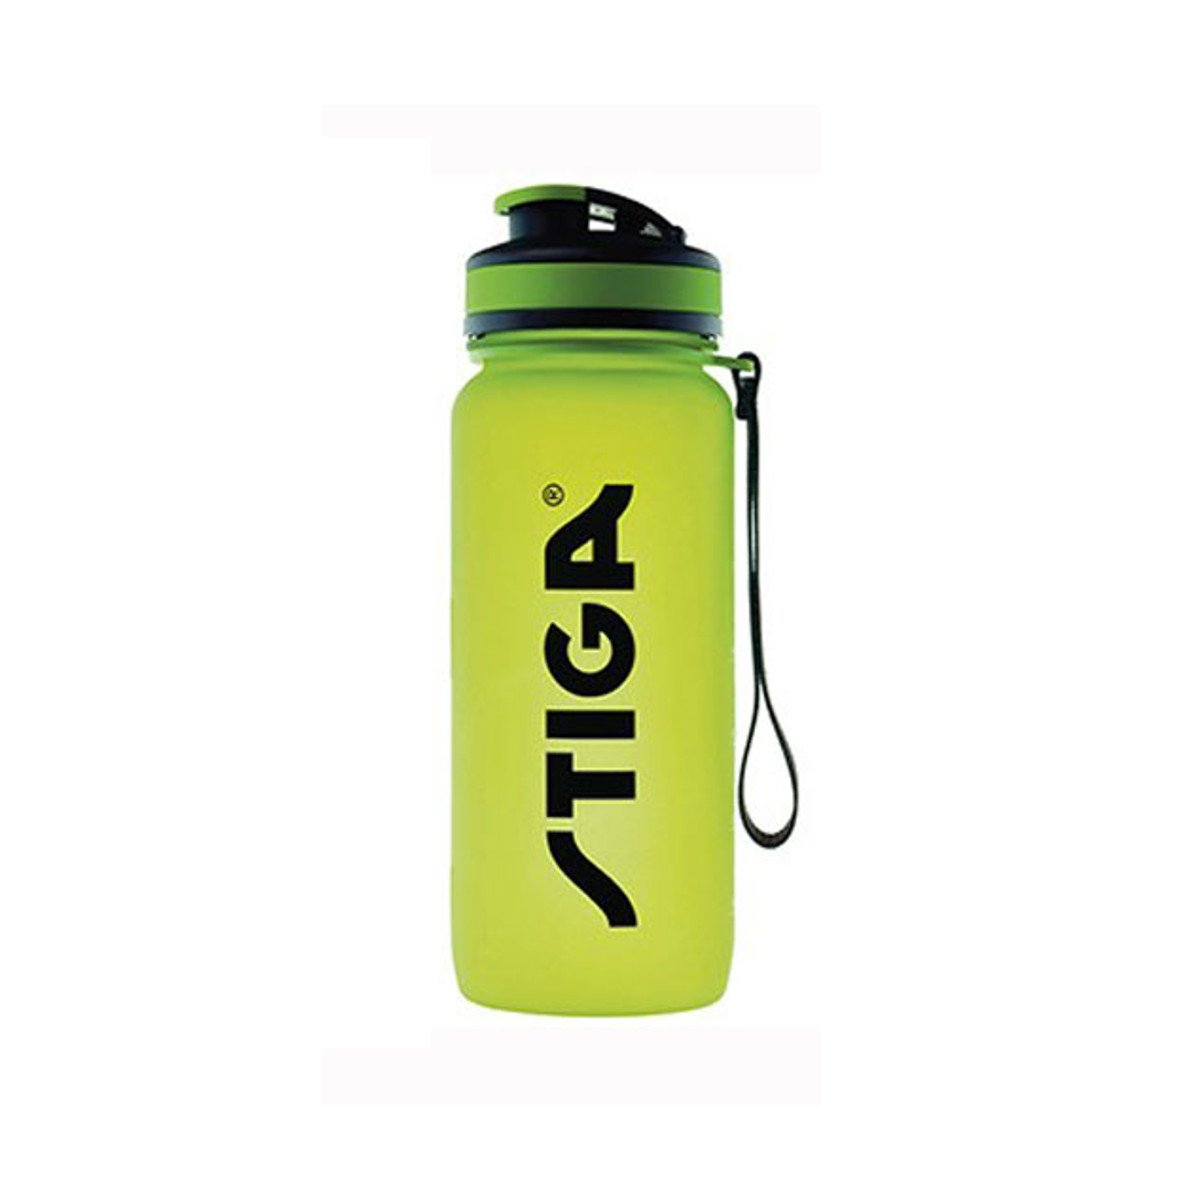 STIGA Water Bottle, 650 ml, Green